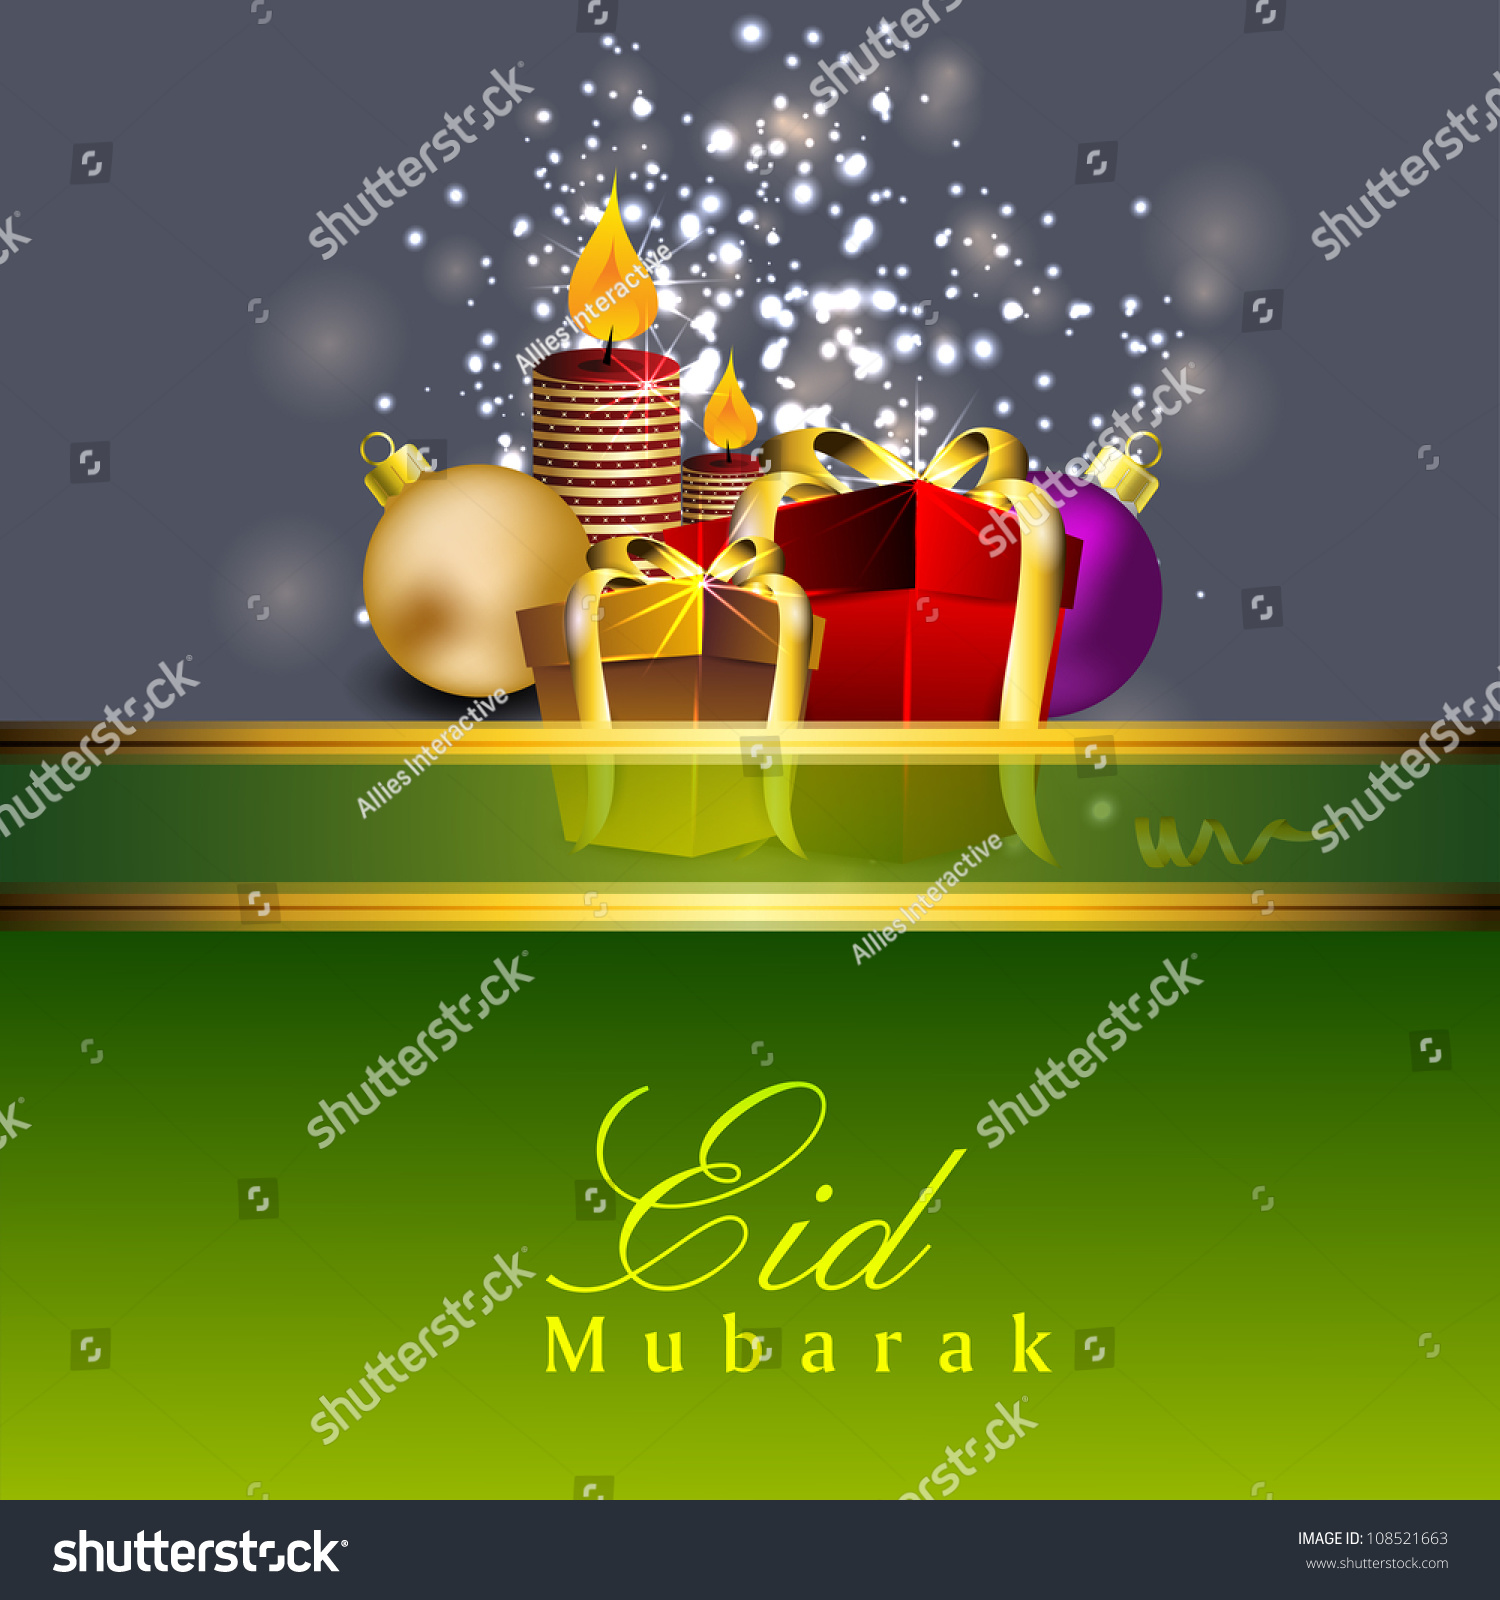 Beautiful eid mubarak greeting card gift stock vector 108521663 beautiful eid mubarak greeting card with gift boxes and candles m4hsunfo